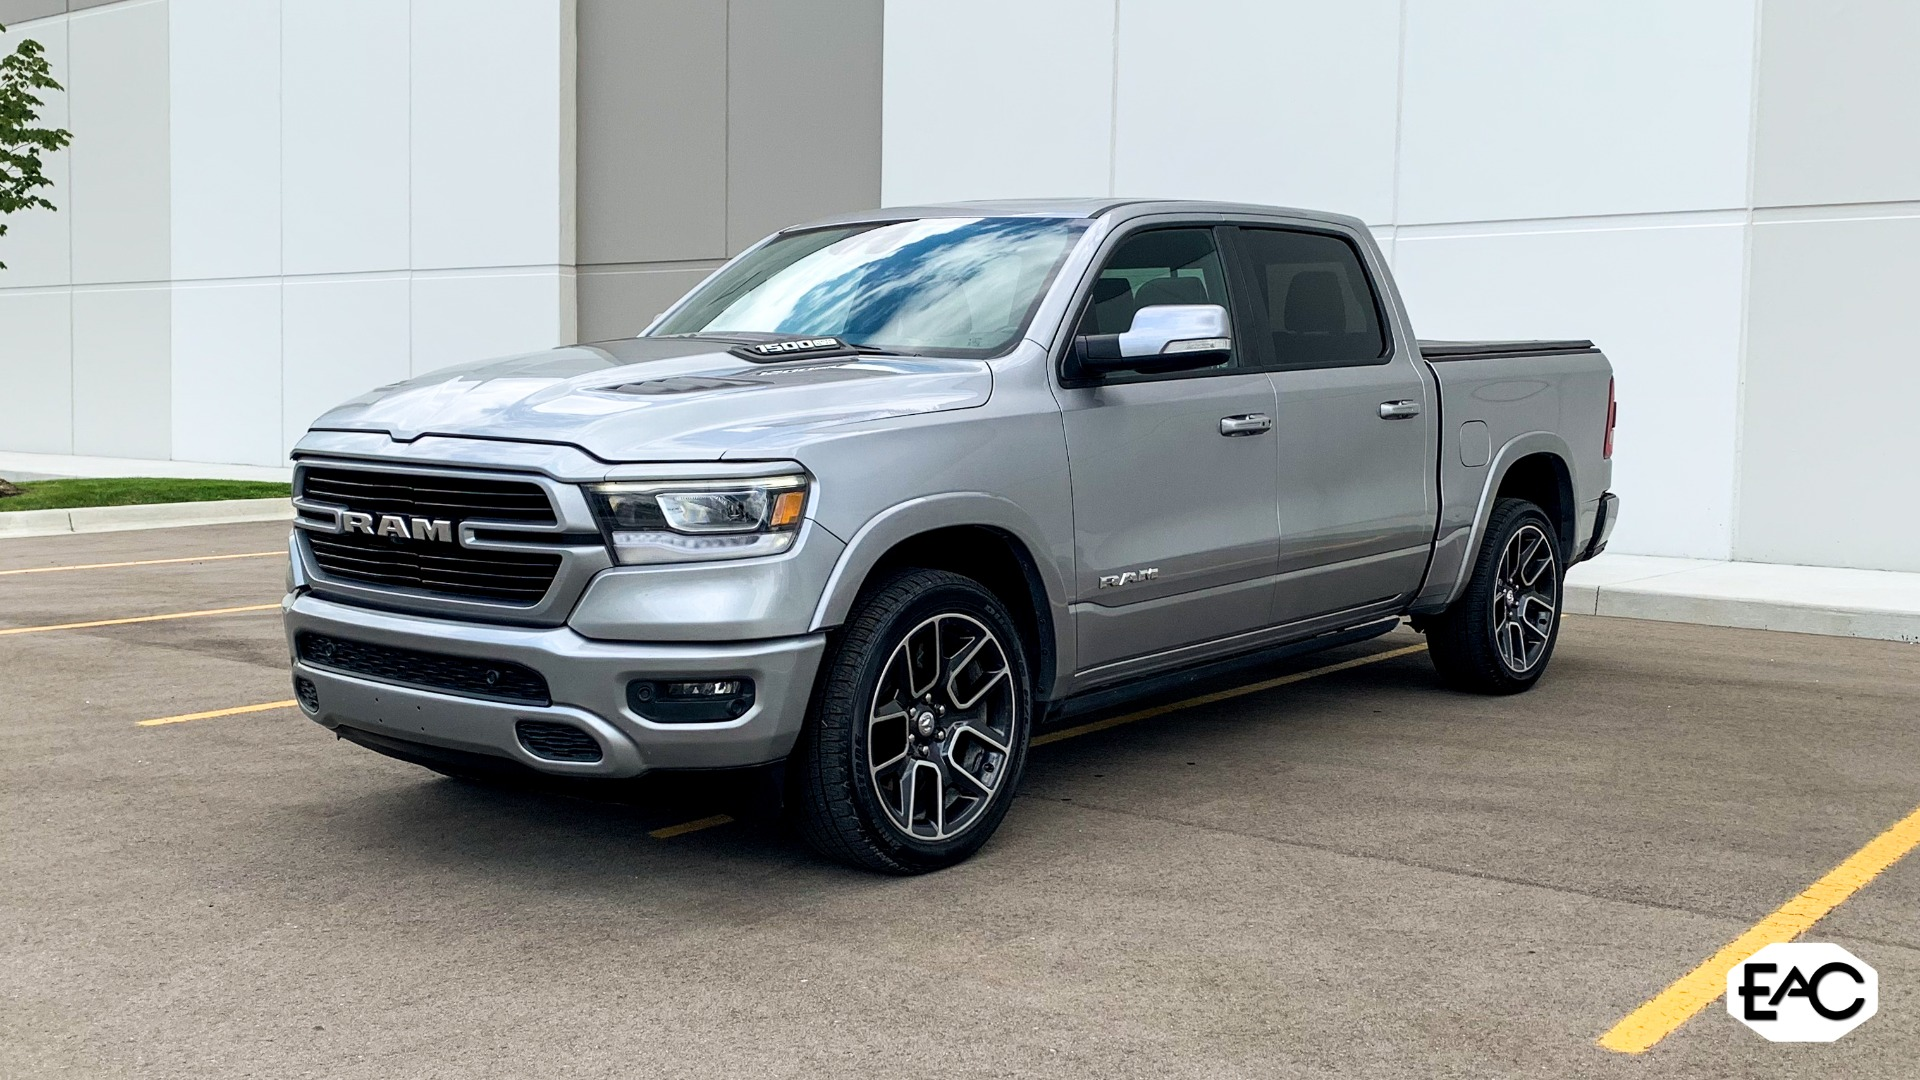 Used 2019 Ram Ram Pickup 1500 Laramie for sale $44,990 at Empire Auto Collection in Warren MI 48091 1